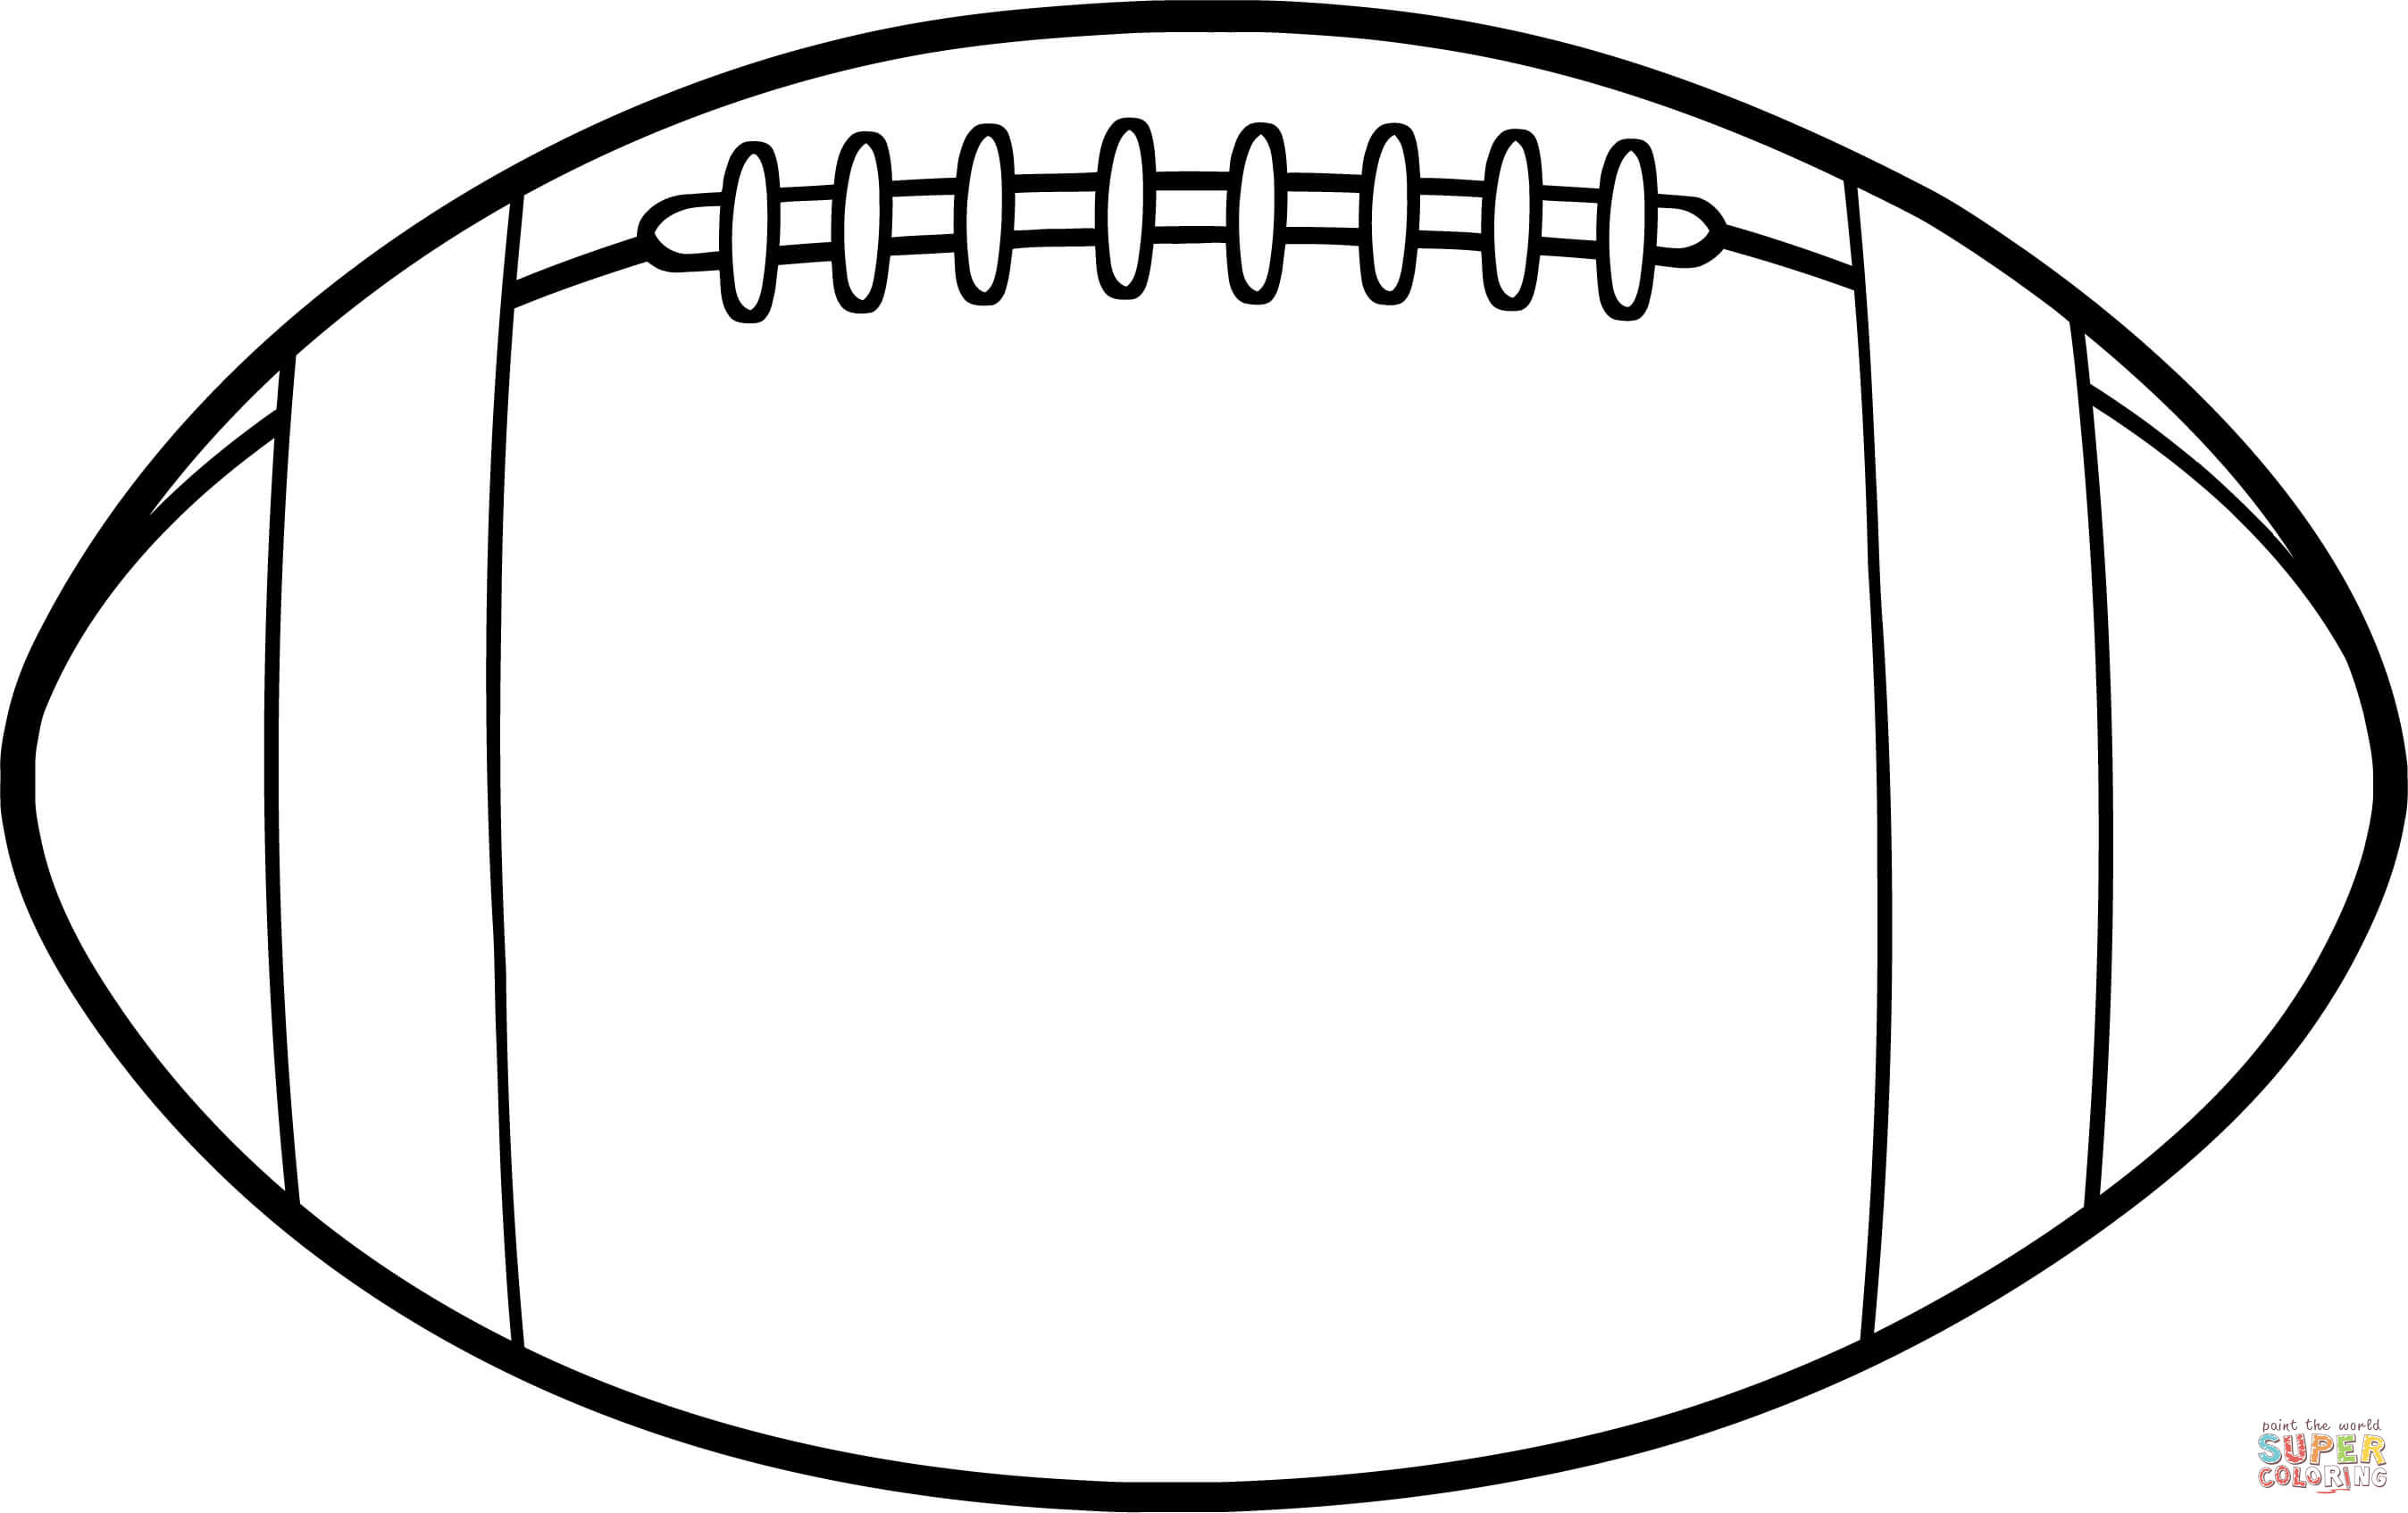 American Football Ball coloring page | Free Printable Coloring Pages